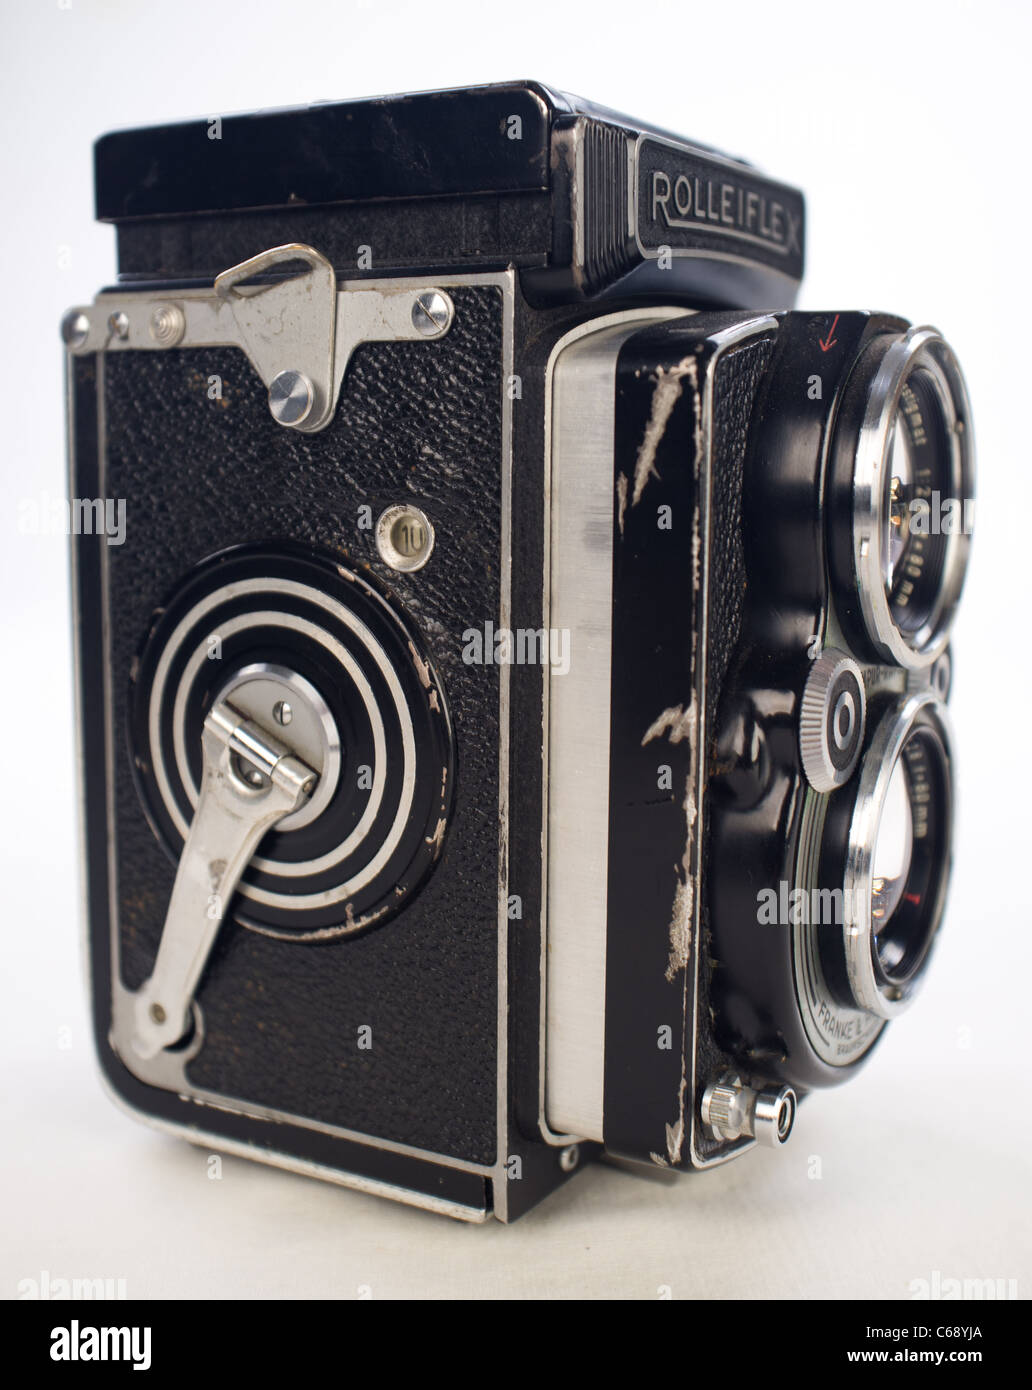 Well Used Professional Rolleiflex TLR Camera 1950's German Medium Format  Franke & Heidecke ROLLEI ZEISS - Stock Image